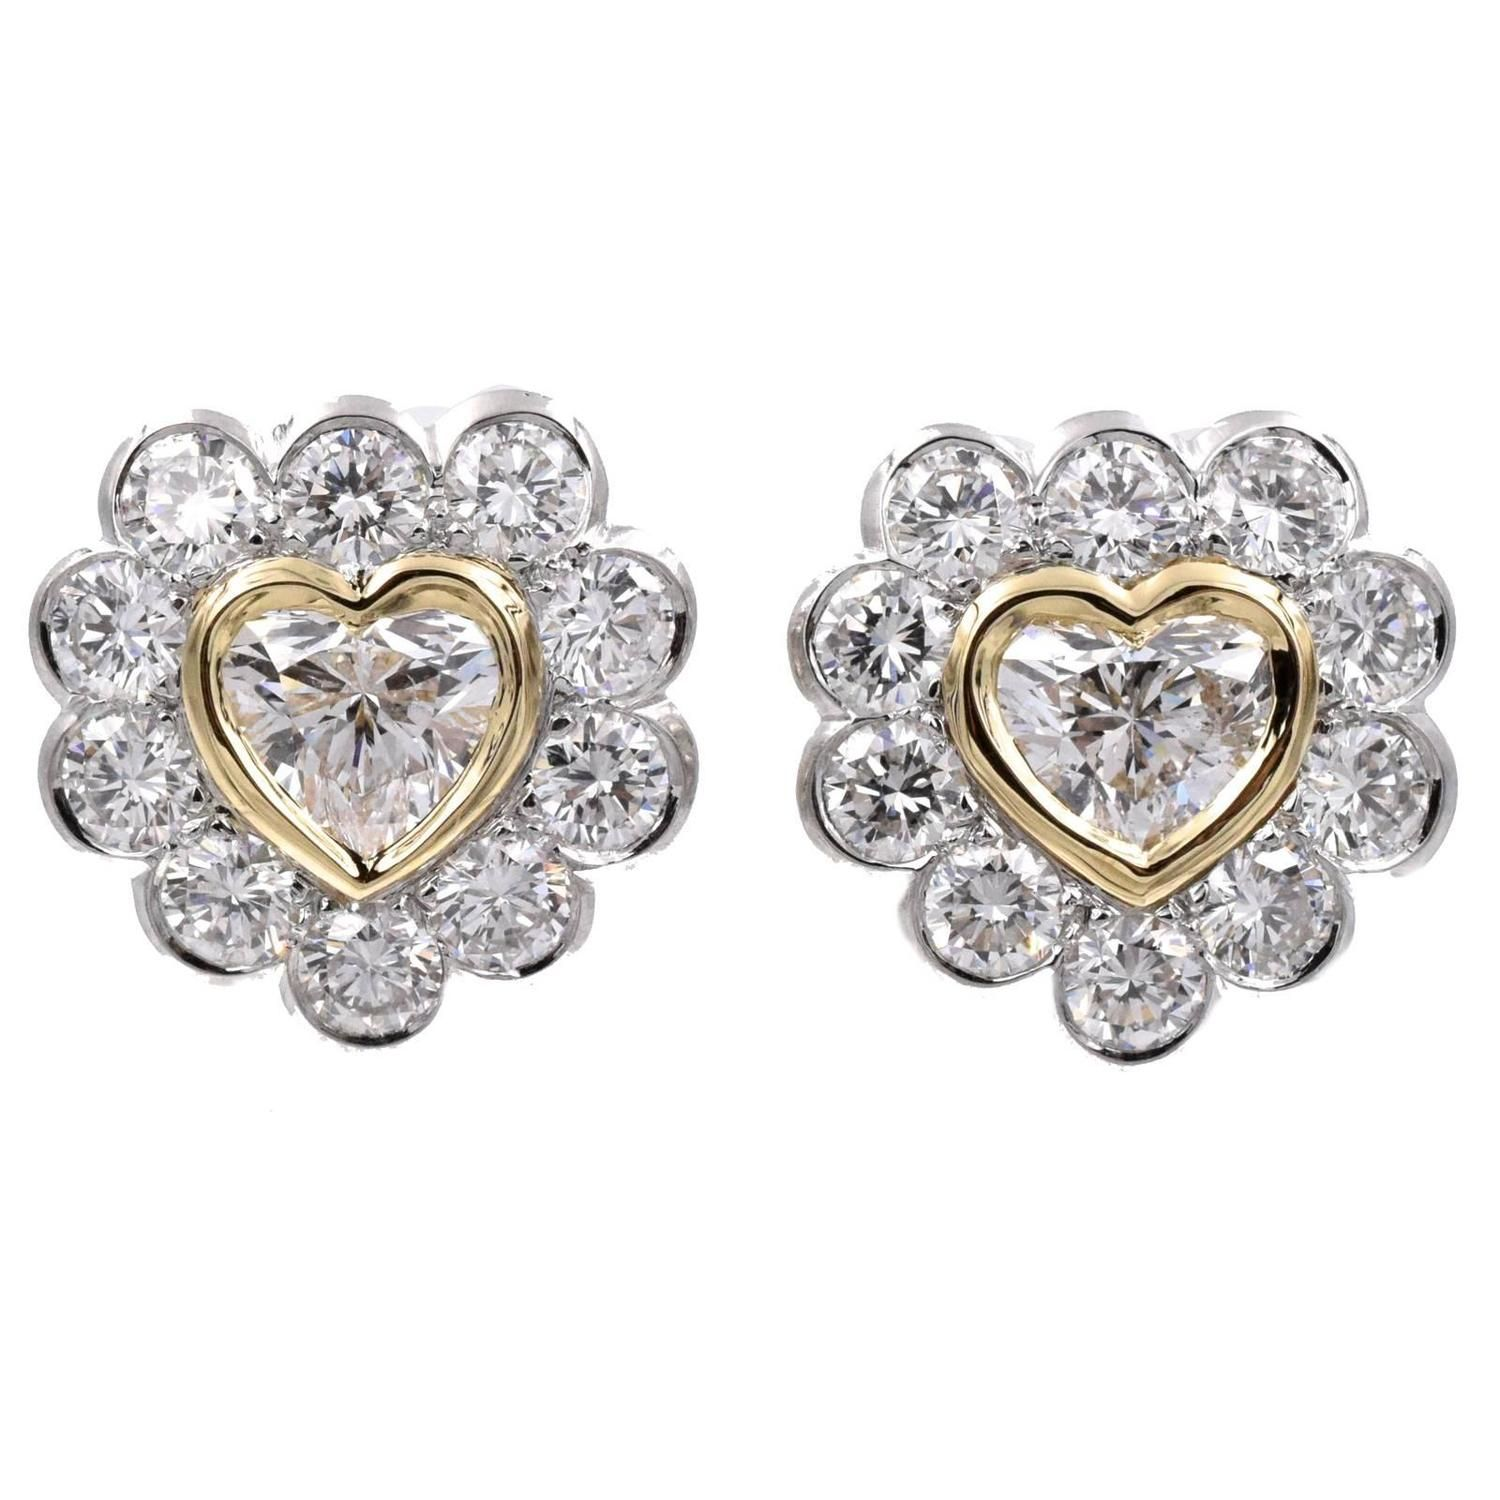 Sweet Valentine GIA Cert Heart Shaped Diamond Gold Earrings  | From a unique collection of vintage clip-on earrings at https://www.1stdibs.com/jewelry/earrings/clip-on-earrings/